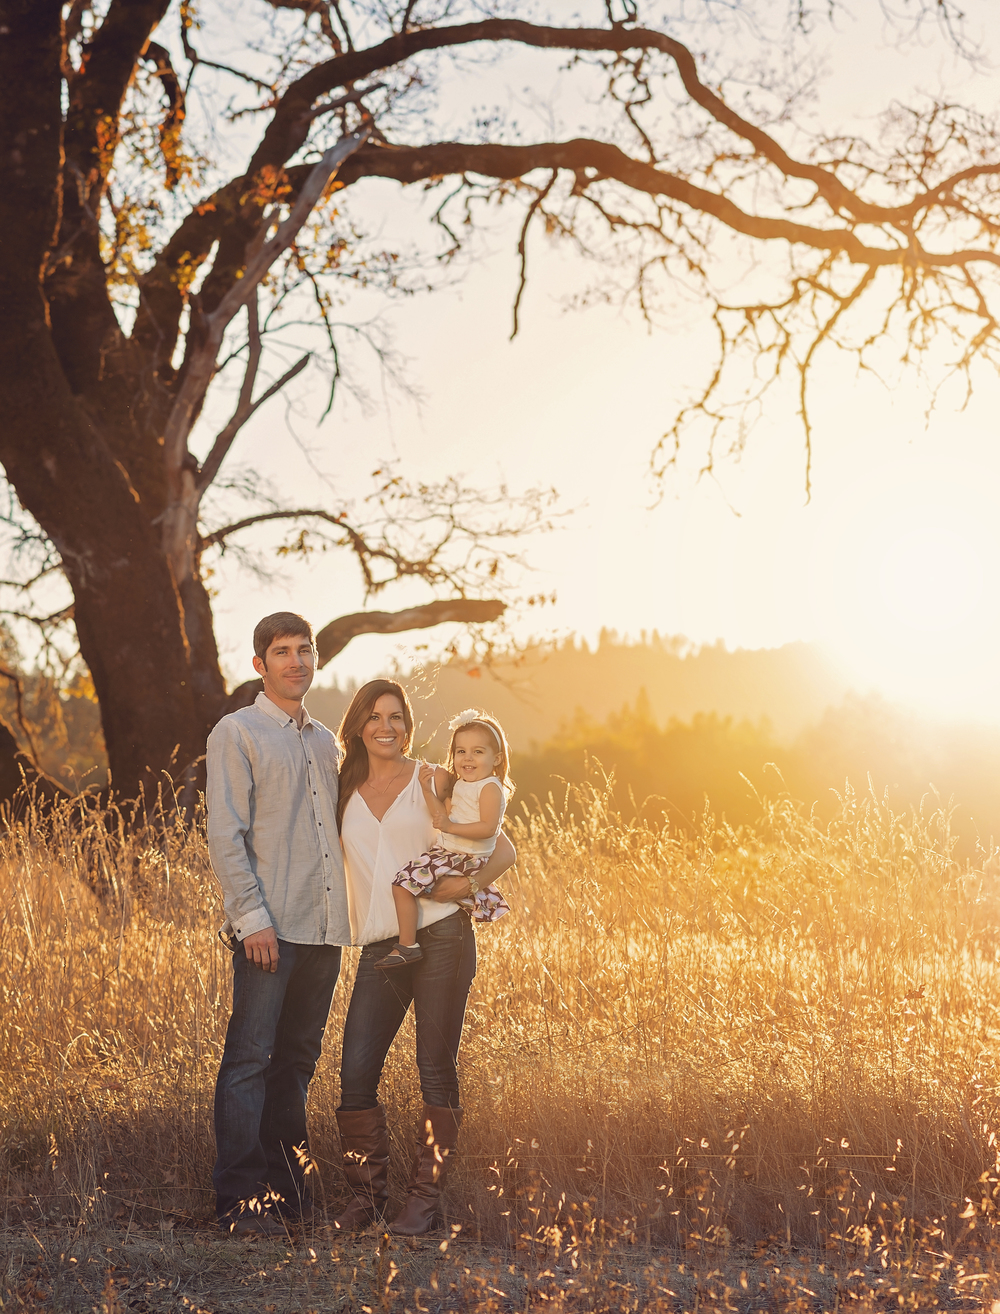 Golden-Sunset-Family-Garberville-California-Oak-Tree-Field-Grass-Autumn-Southern-Humboldt-Community-Park-Fall-Nature-Beauty-